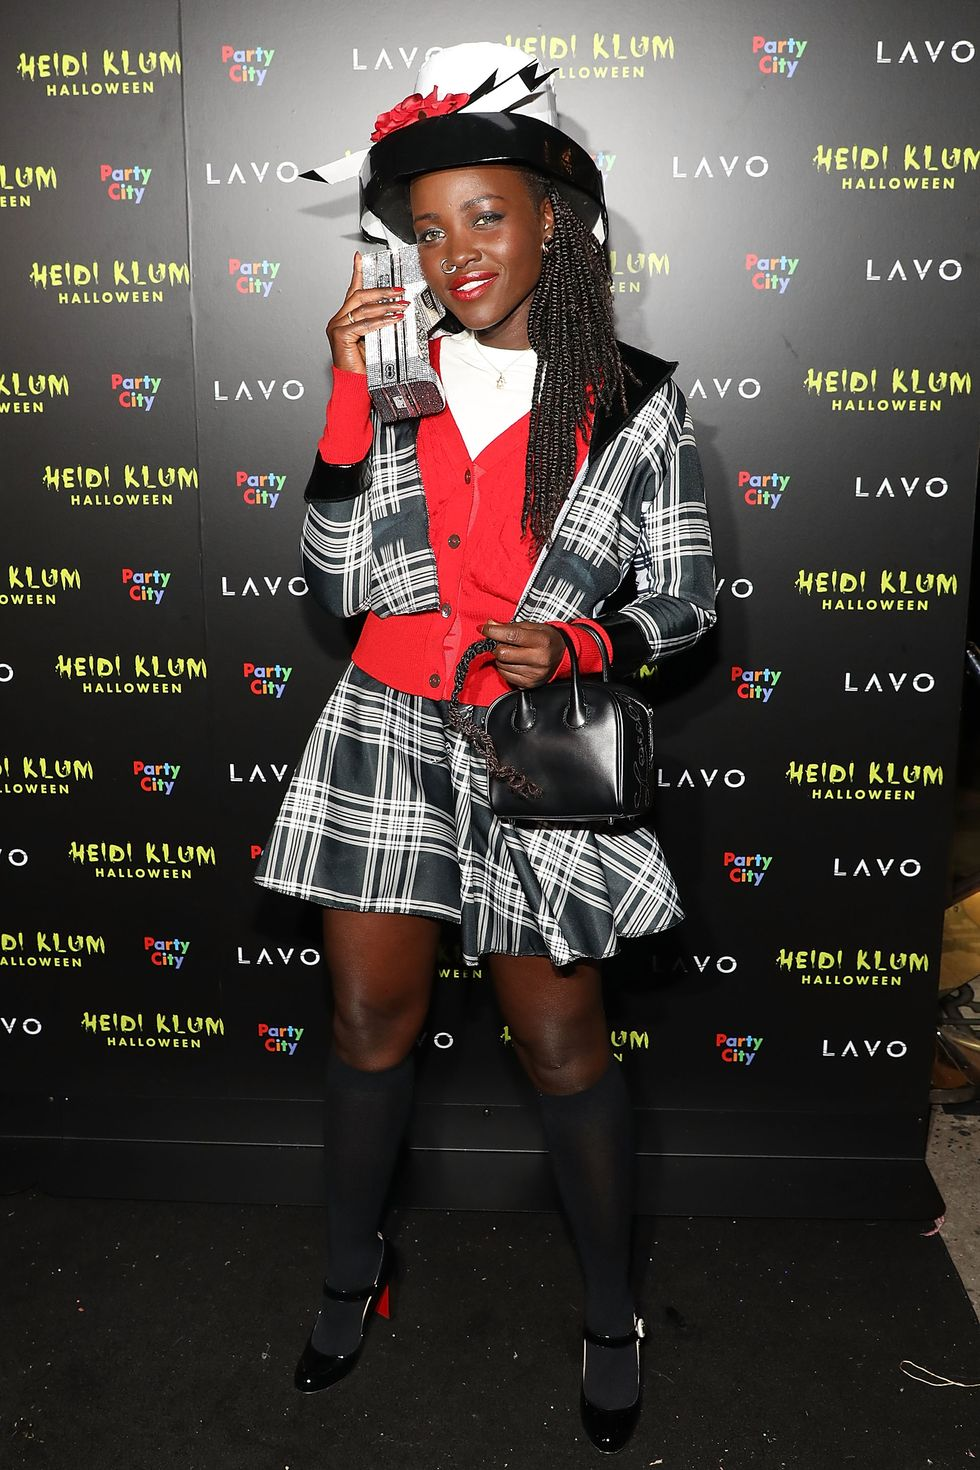 Lupita Nyong'o dressed up as Dion fromClueless. she's wearing the iconic black and white tartan mini skirt and jacket set, with a red cardigan over a white t-shirt. Her hair is braided and she's wear Dion's signature nose ring and black and white hat, as she pretends to talk on a mobile handset from the 90s.